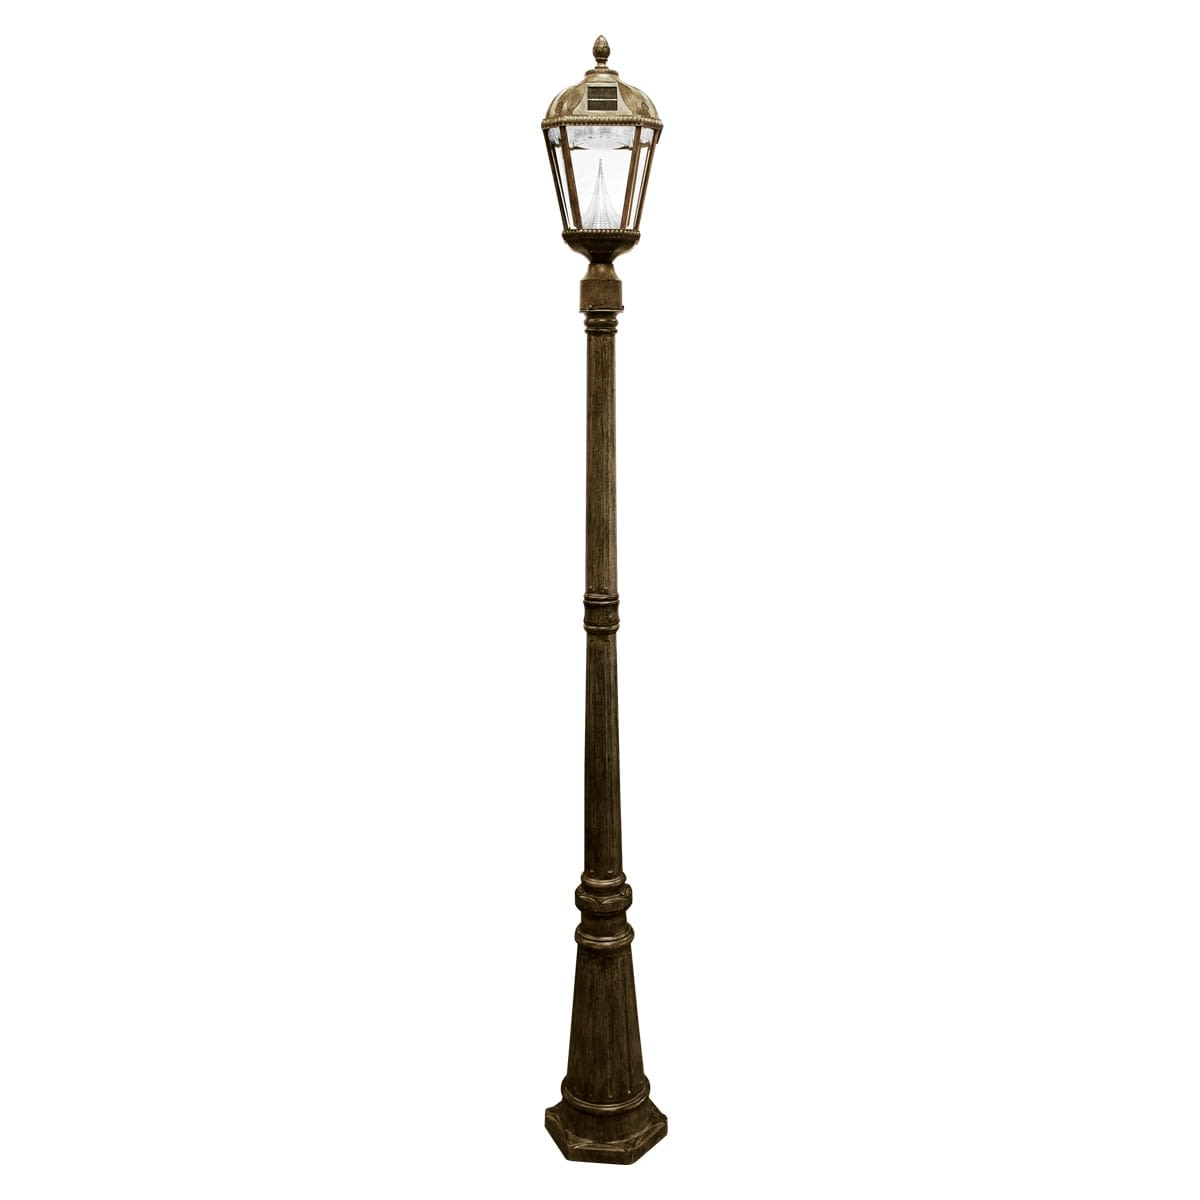 Royal Solar Lamp by Gama Sonic GS-98S-WB